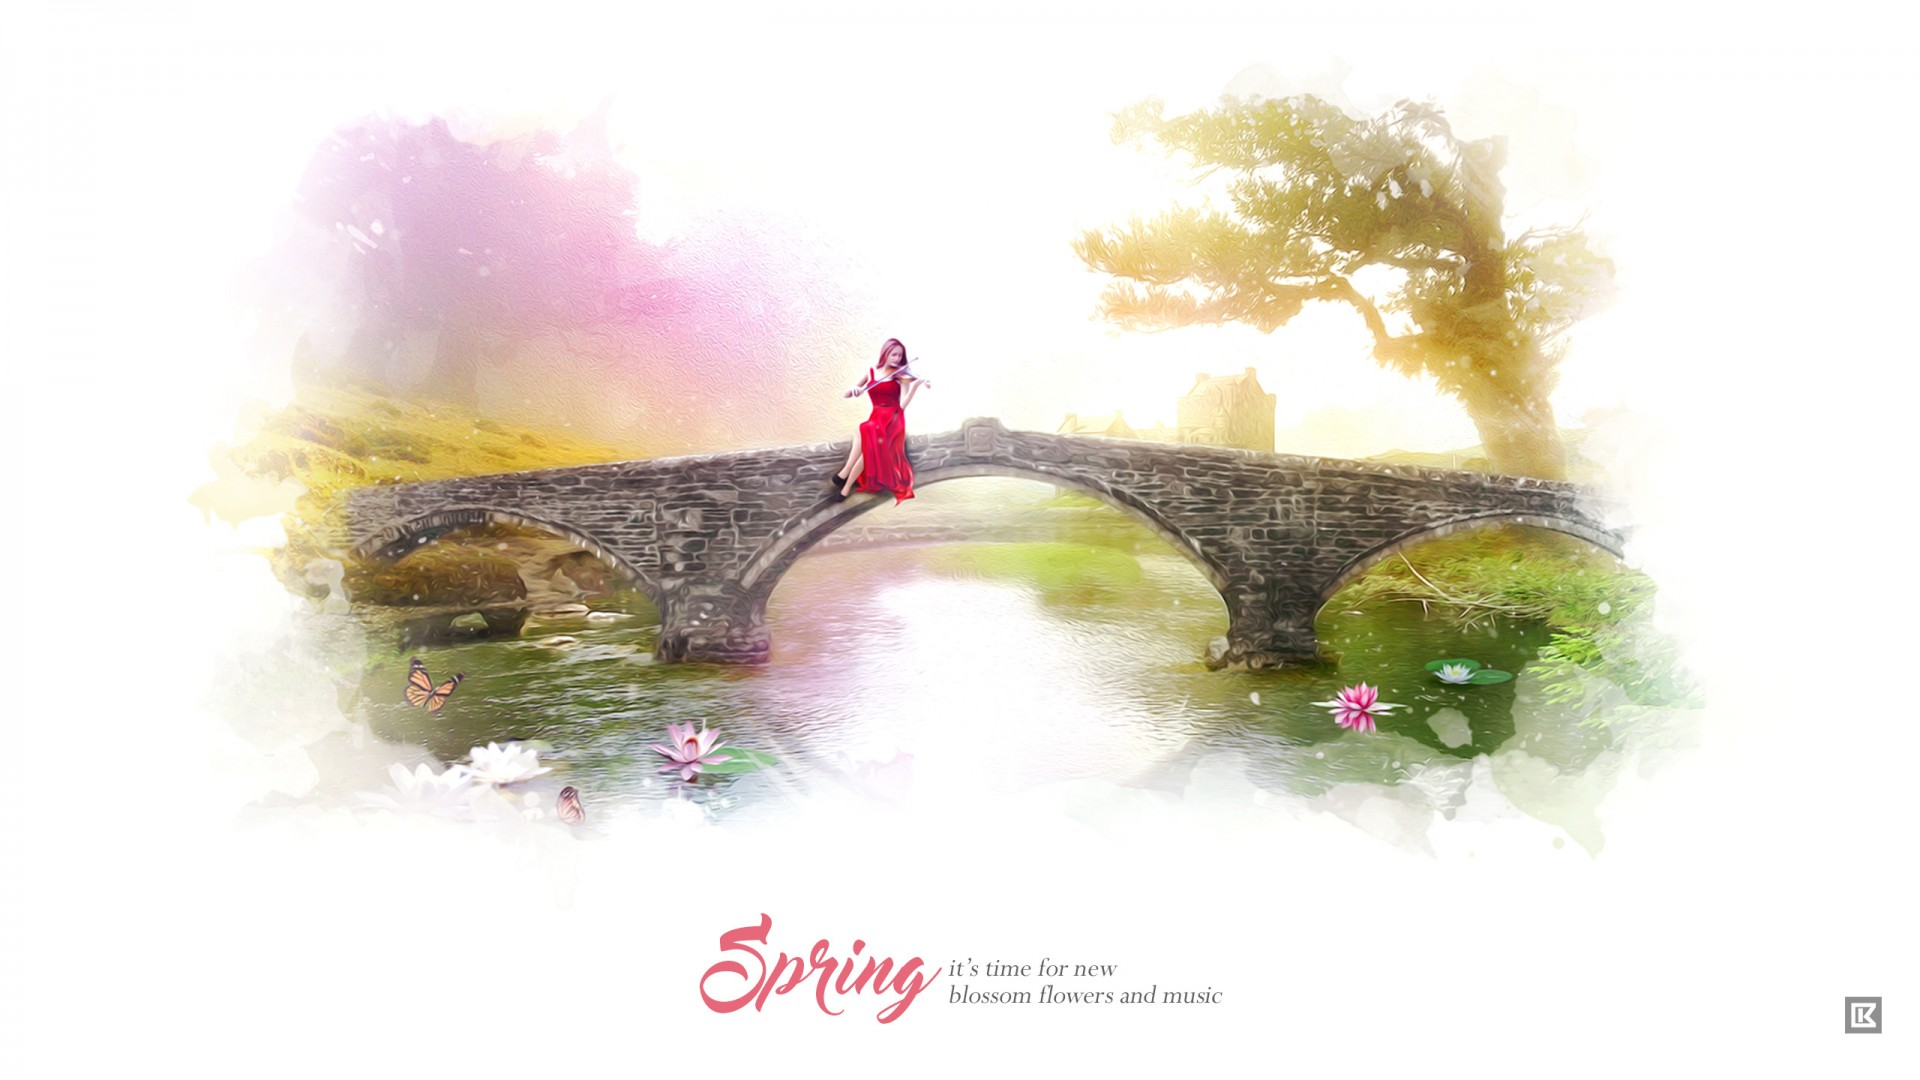 Die Wallpaper With Quotes Spring Blossom Flowers Music Wallpapers Hd Wallpapers